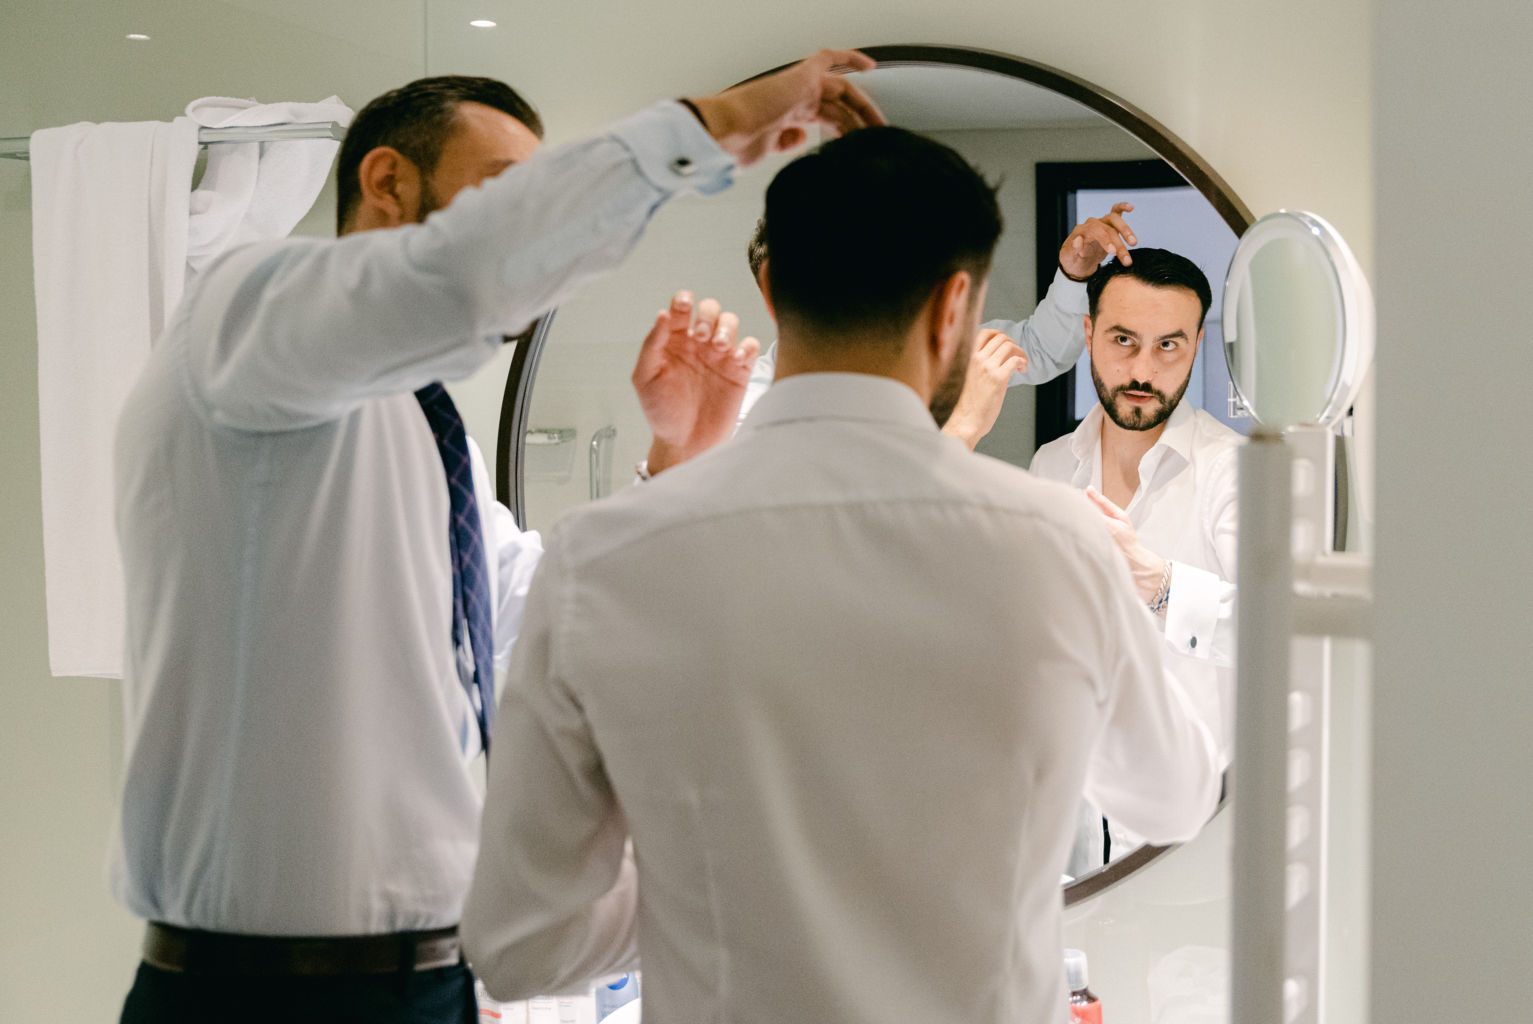 groom getting ready wedding photographer South France